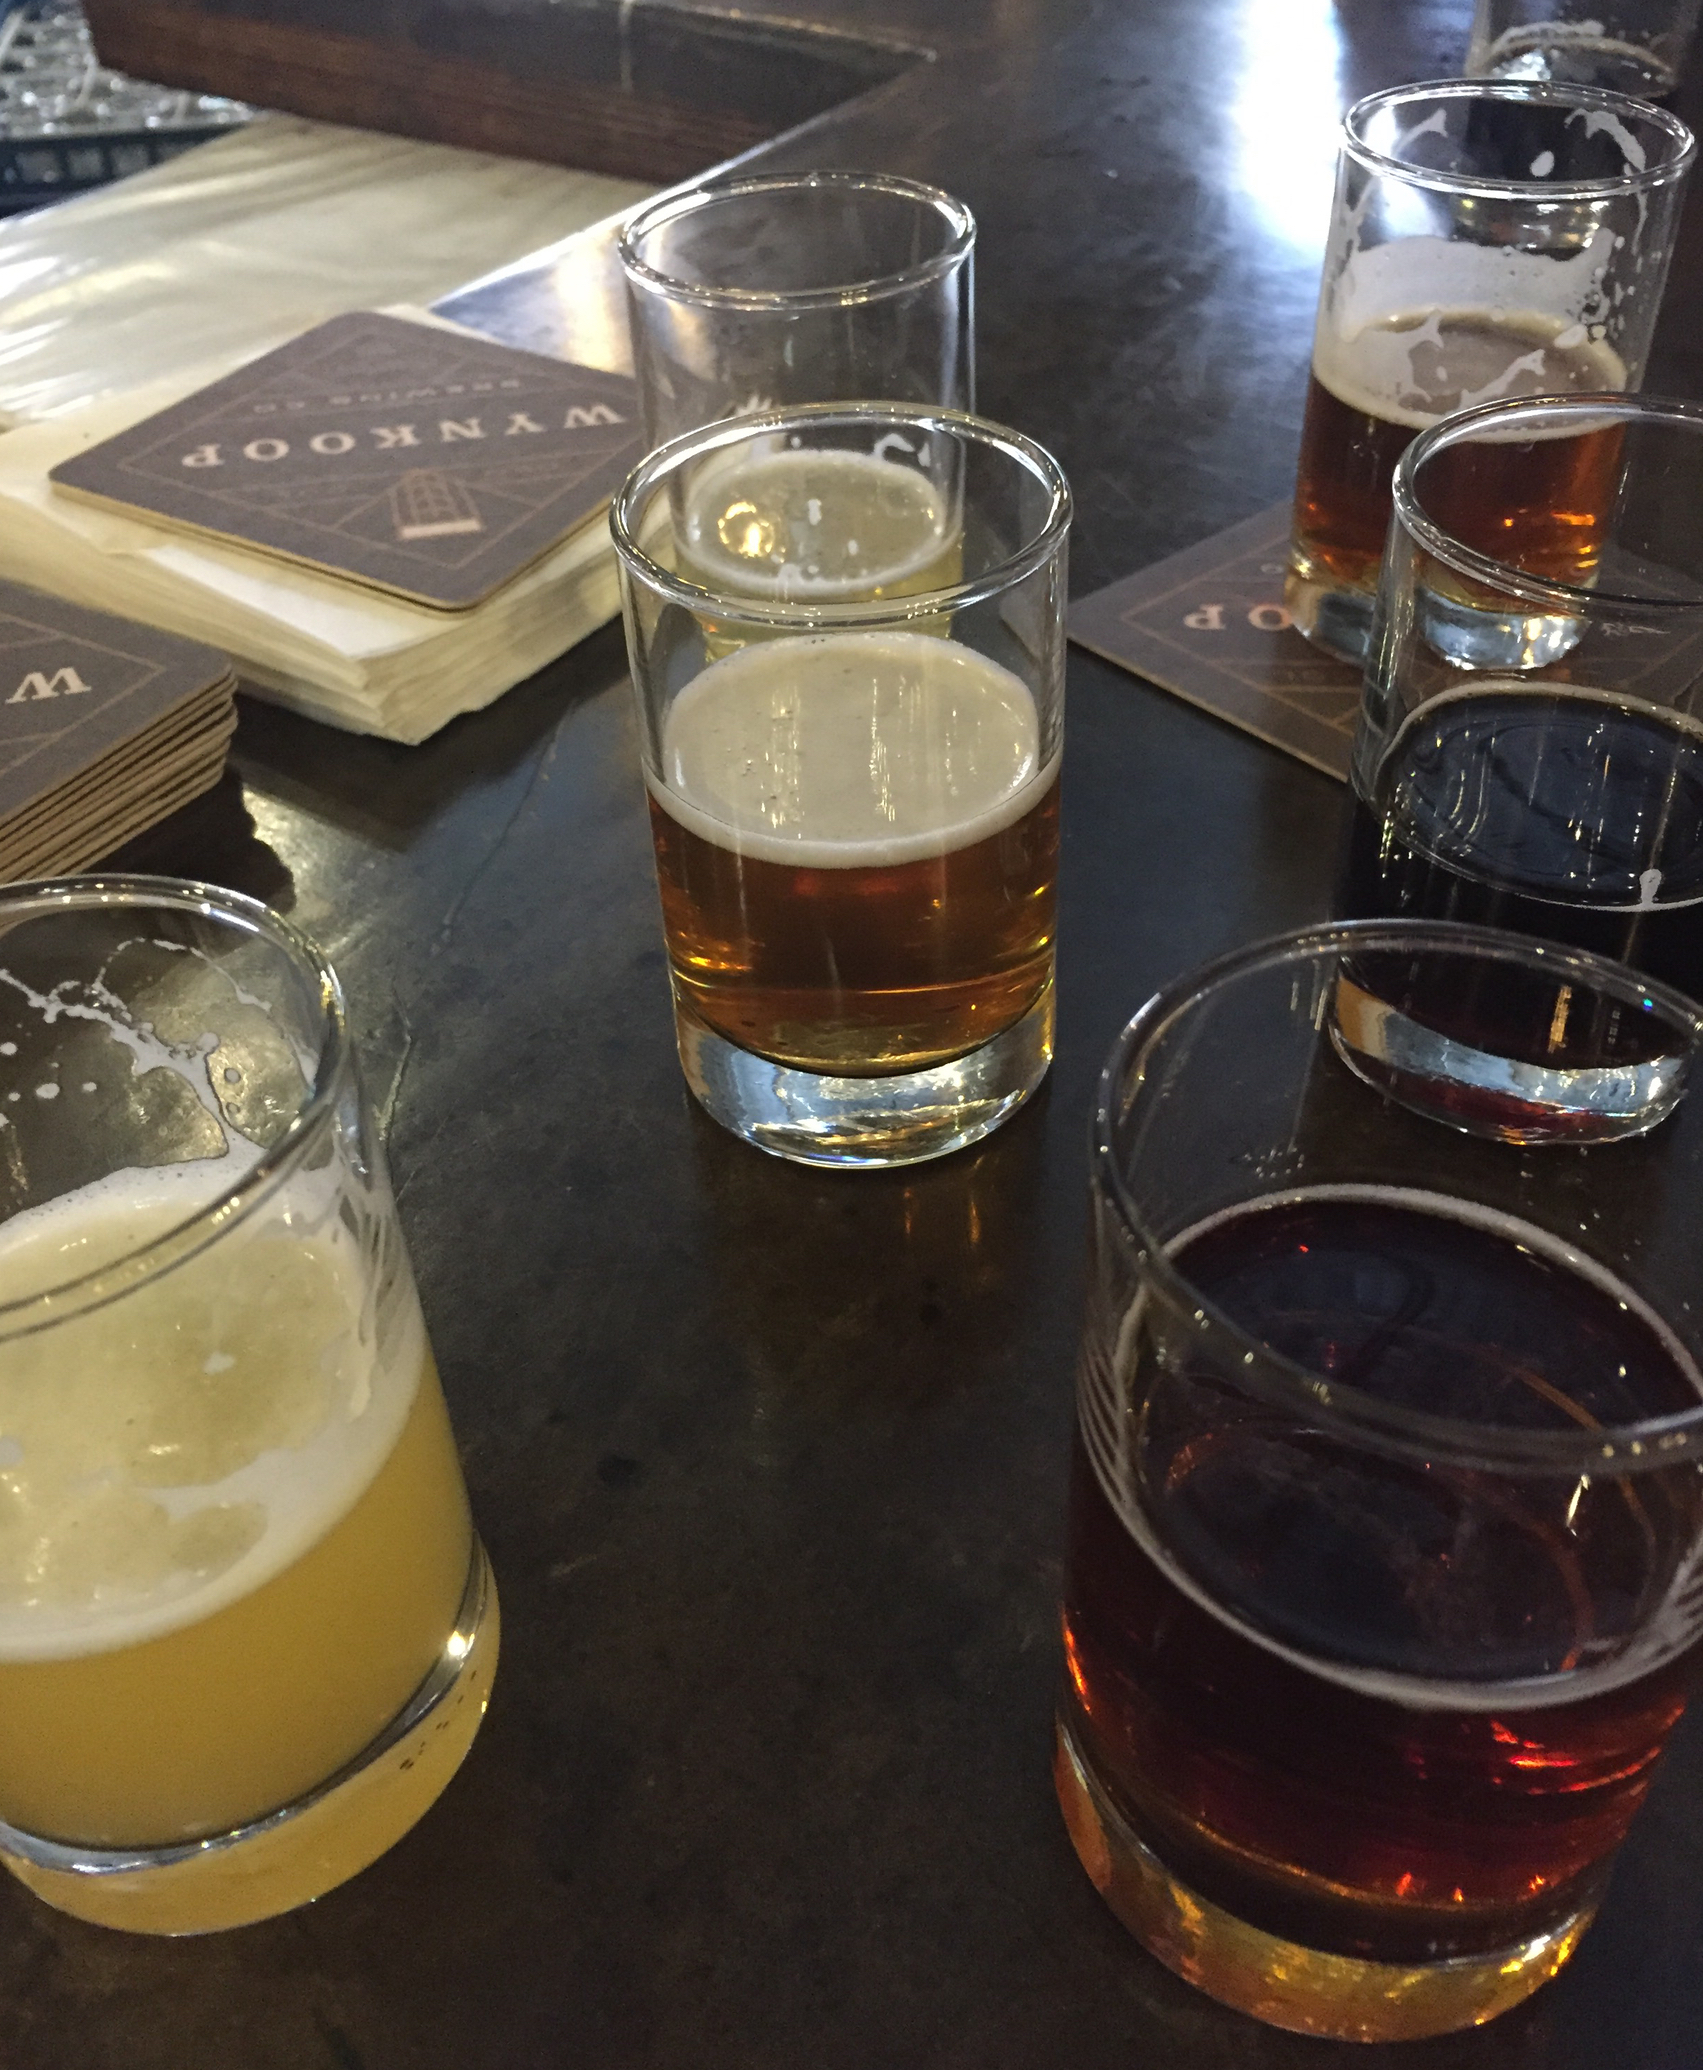 Samples of Wynkoop Brewing's Limey Unicorn, a collaboration beer with FrictionLabs